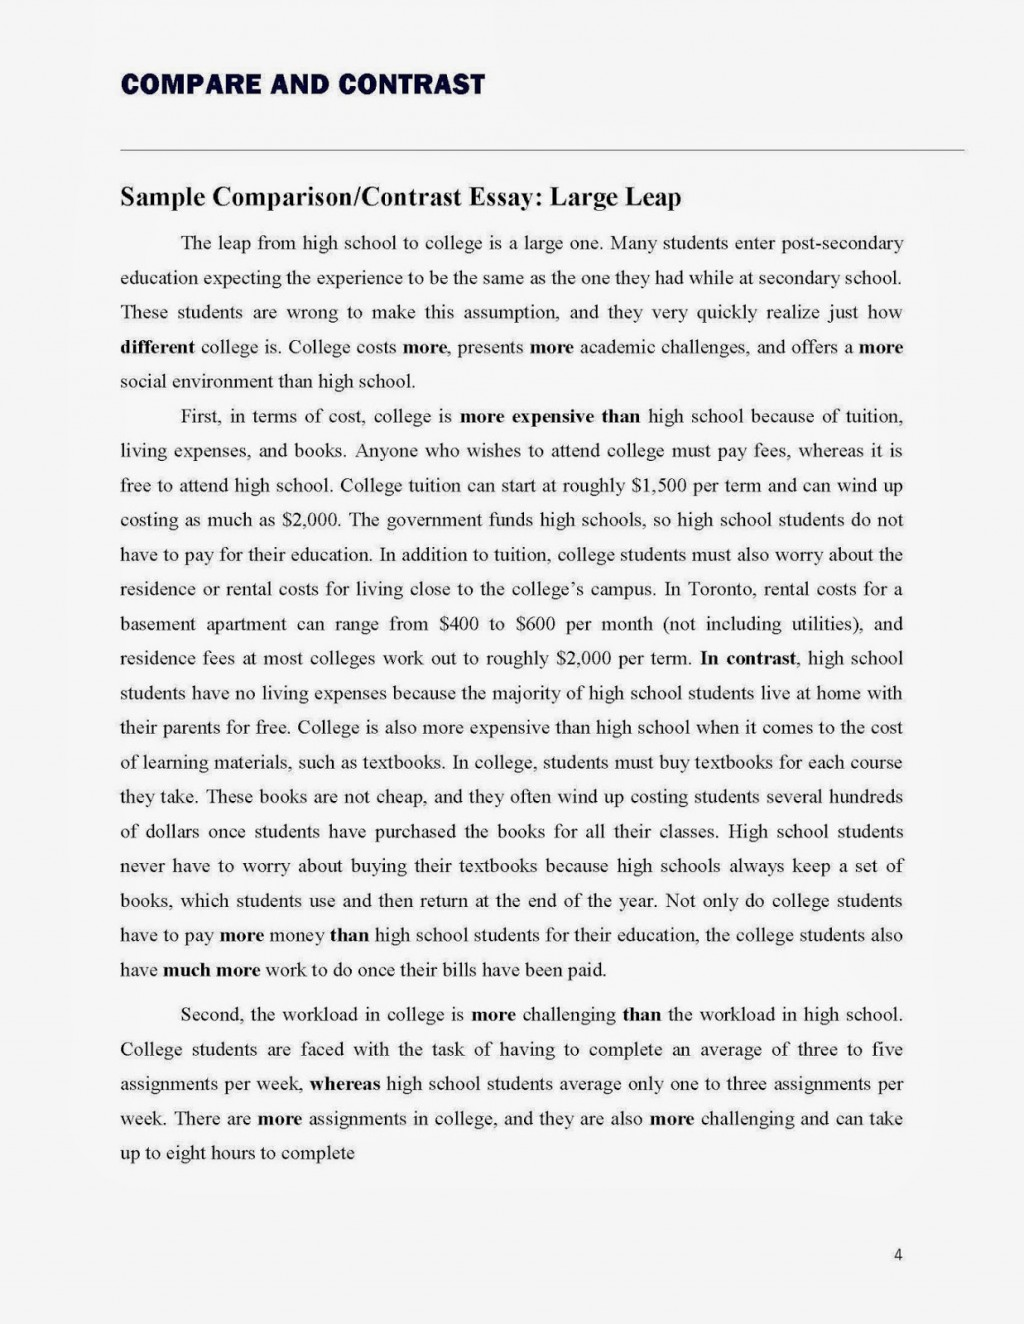 011 Compare And Contrast Essay Compareandcontrastessay Page 4h125 Frightening Prompts 5th Grade Rubric College Ideas 12th Large